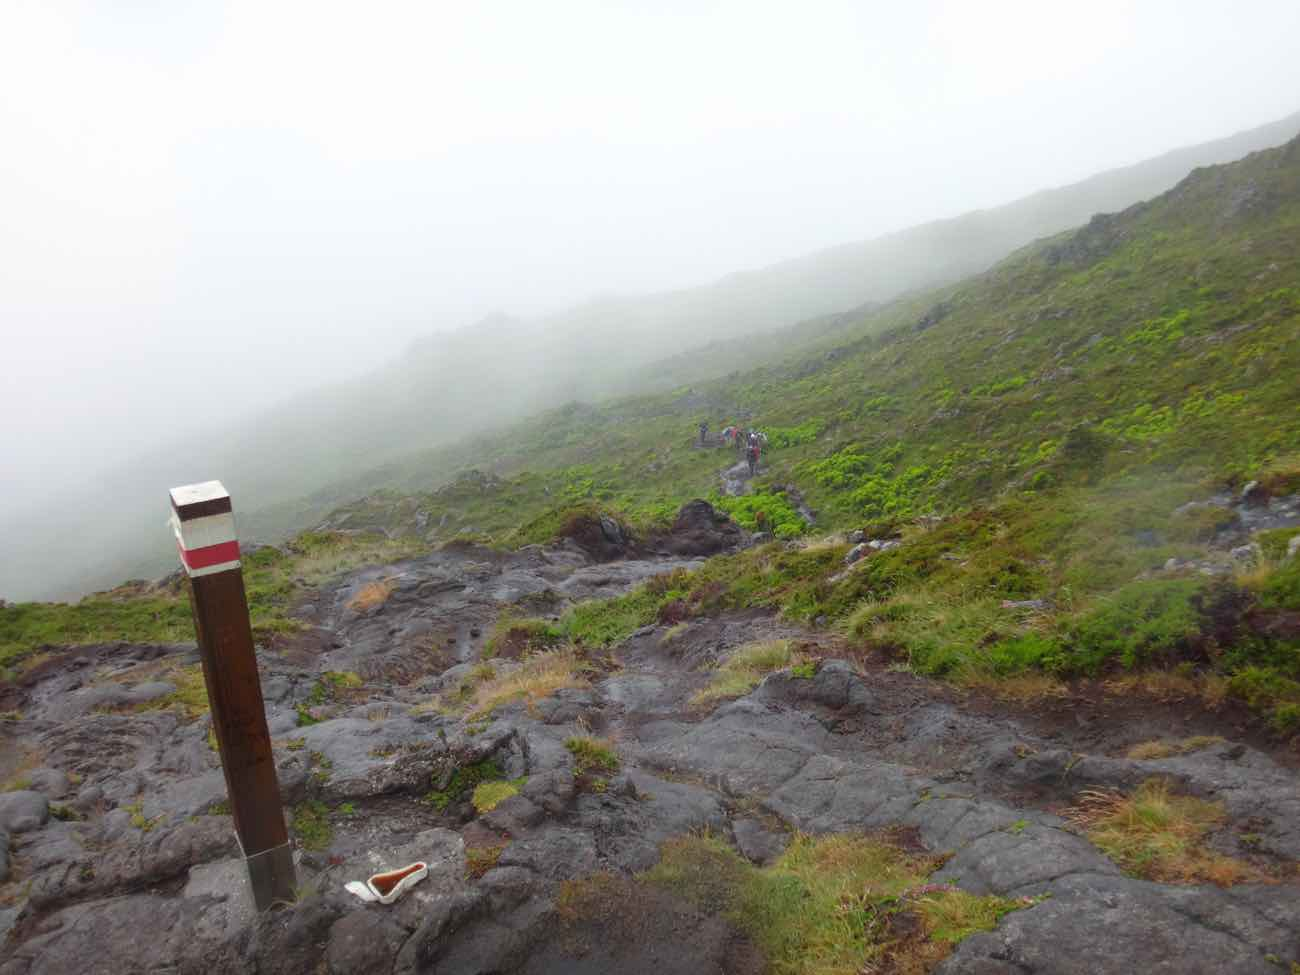 climb mount pico azores guide mist hike upclimb mount pico azores guide mist hike up